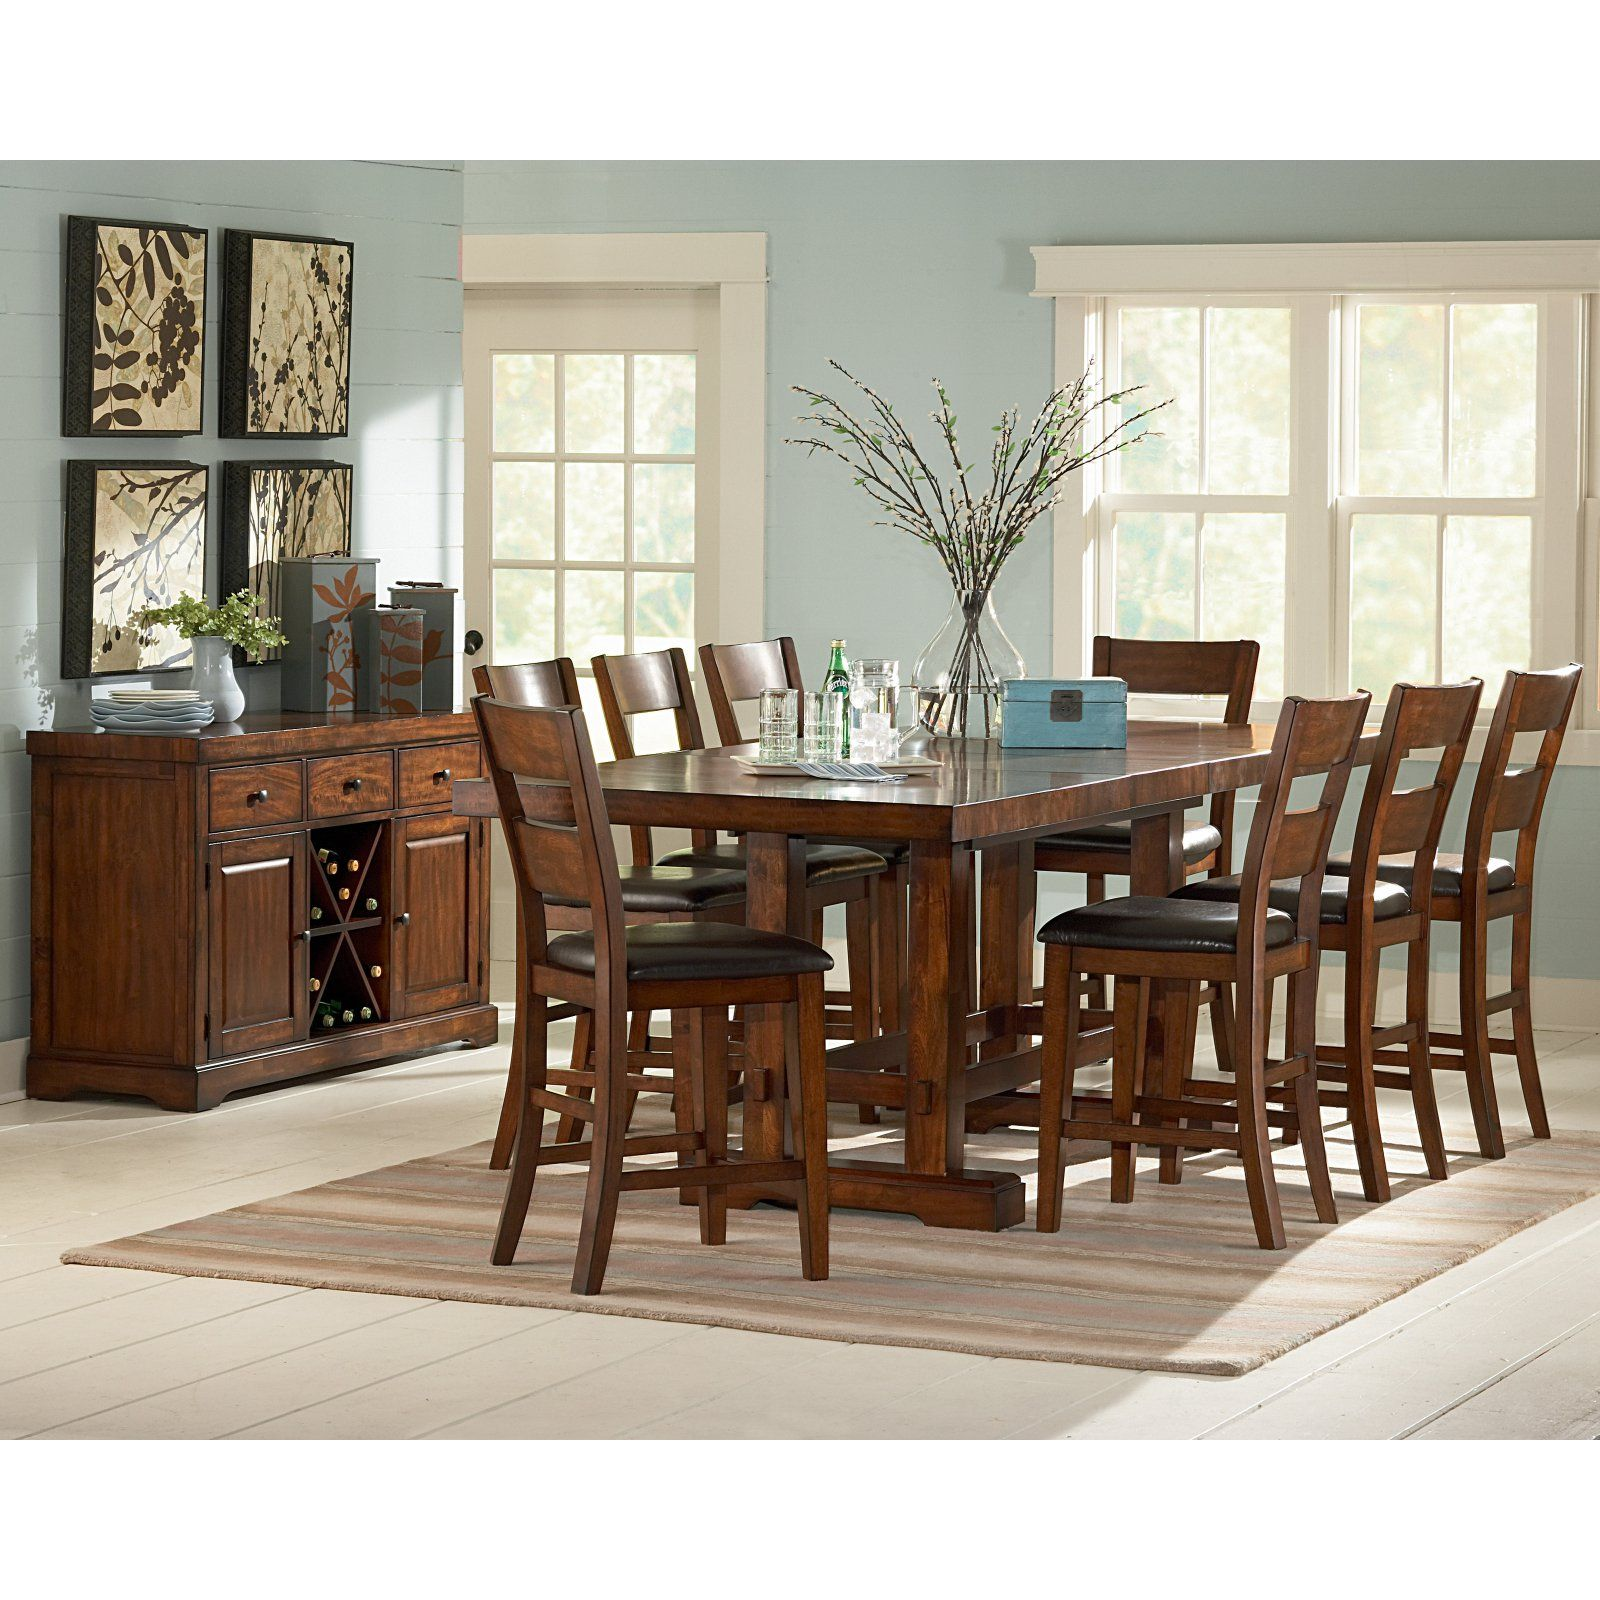 Steve Silver Za 9 Piece Counter Height Dining Set